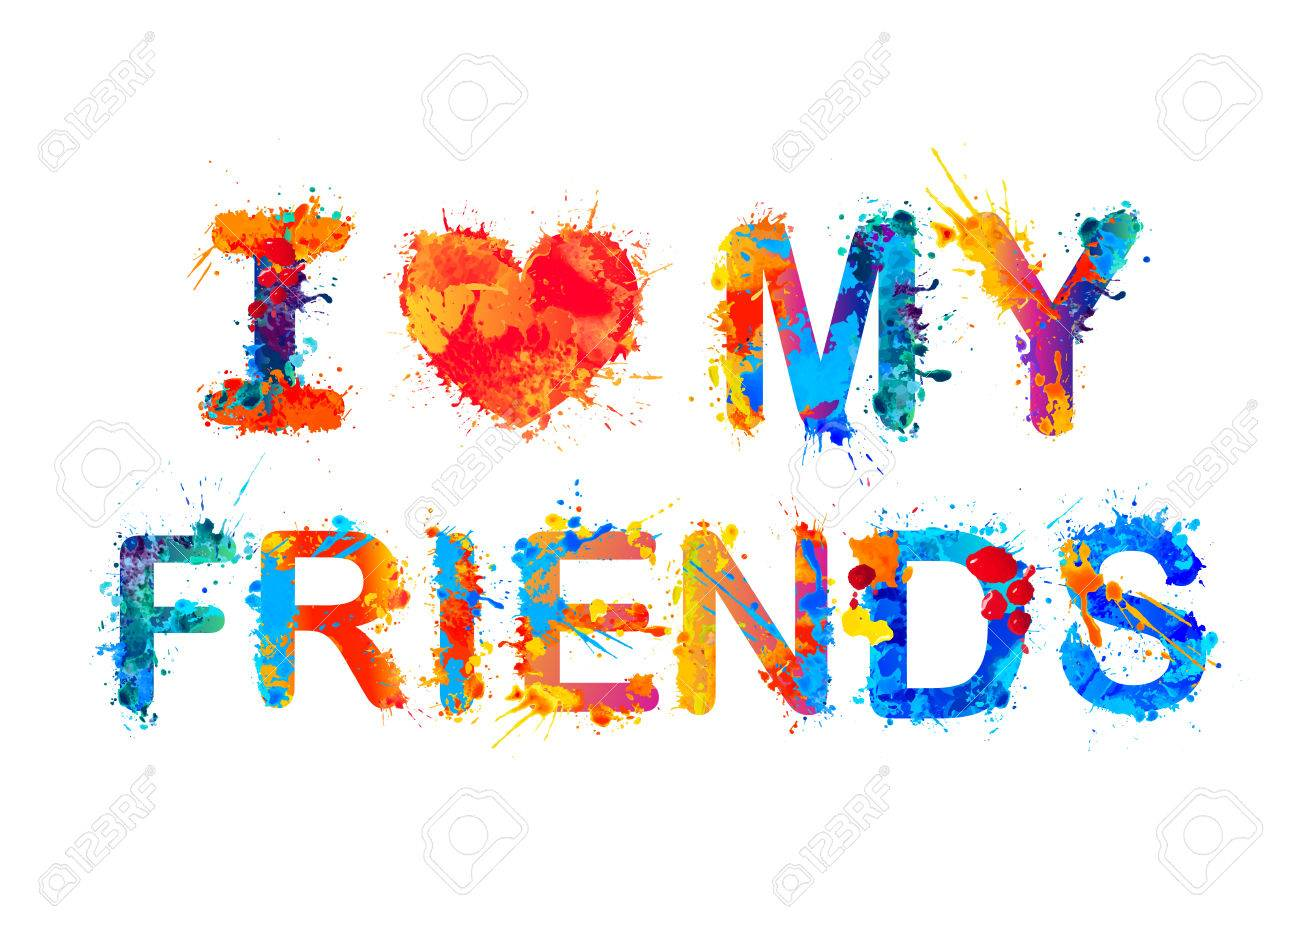 60274927-i-love-my-friends-vector-watercolor-splash-paint.jpg